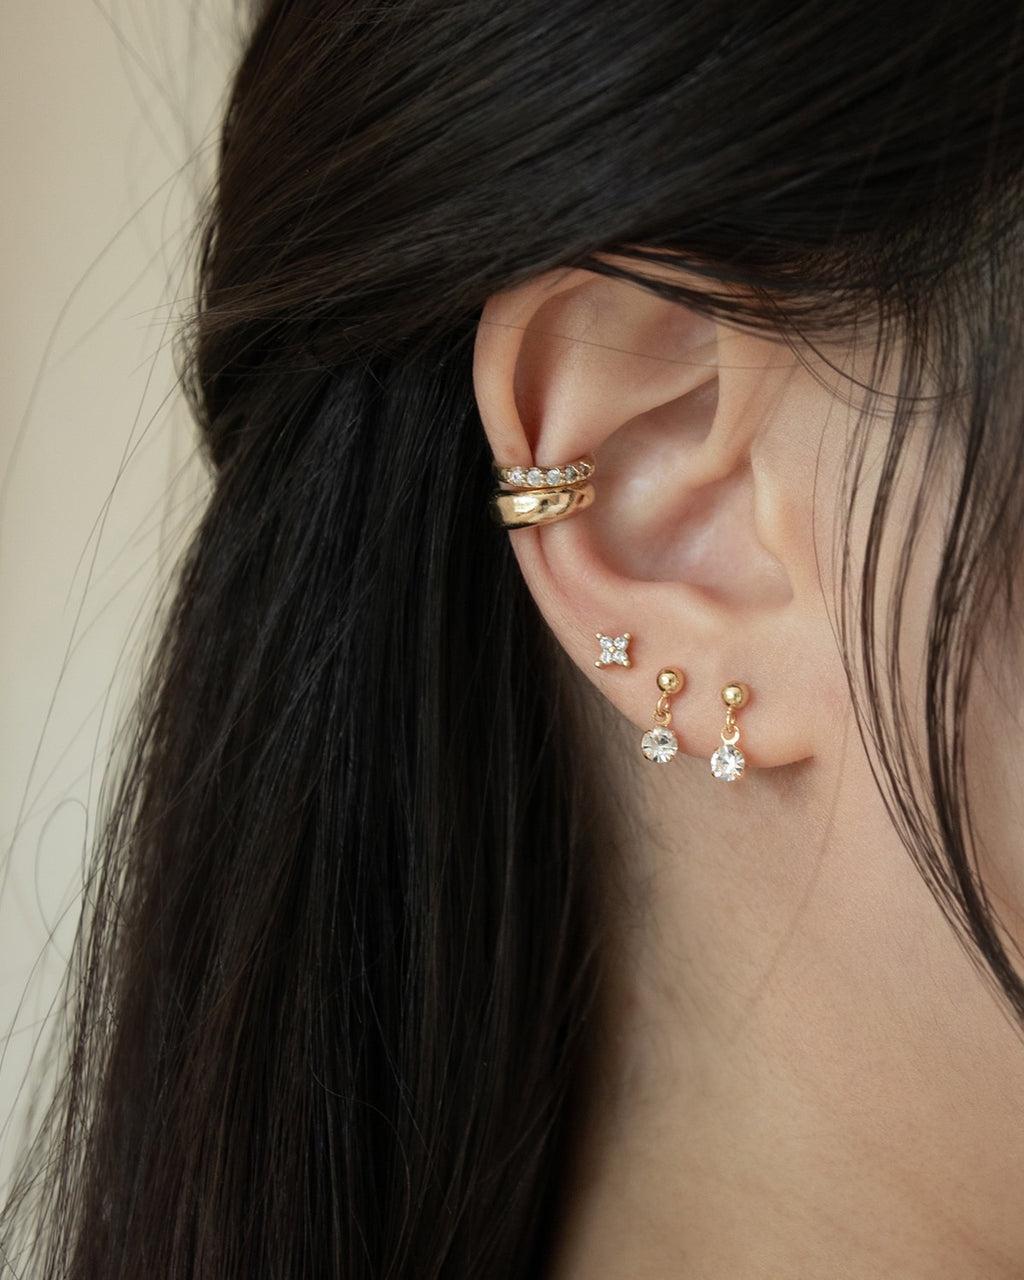 mix and match small dainty earrings for ear stack inspo